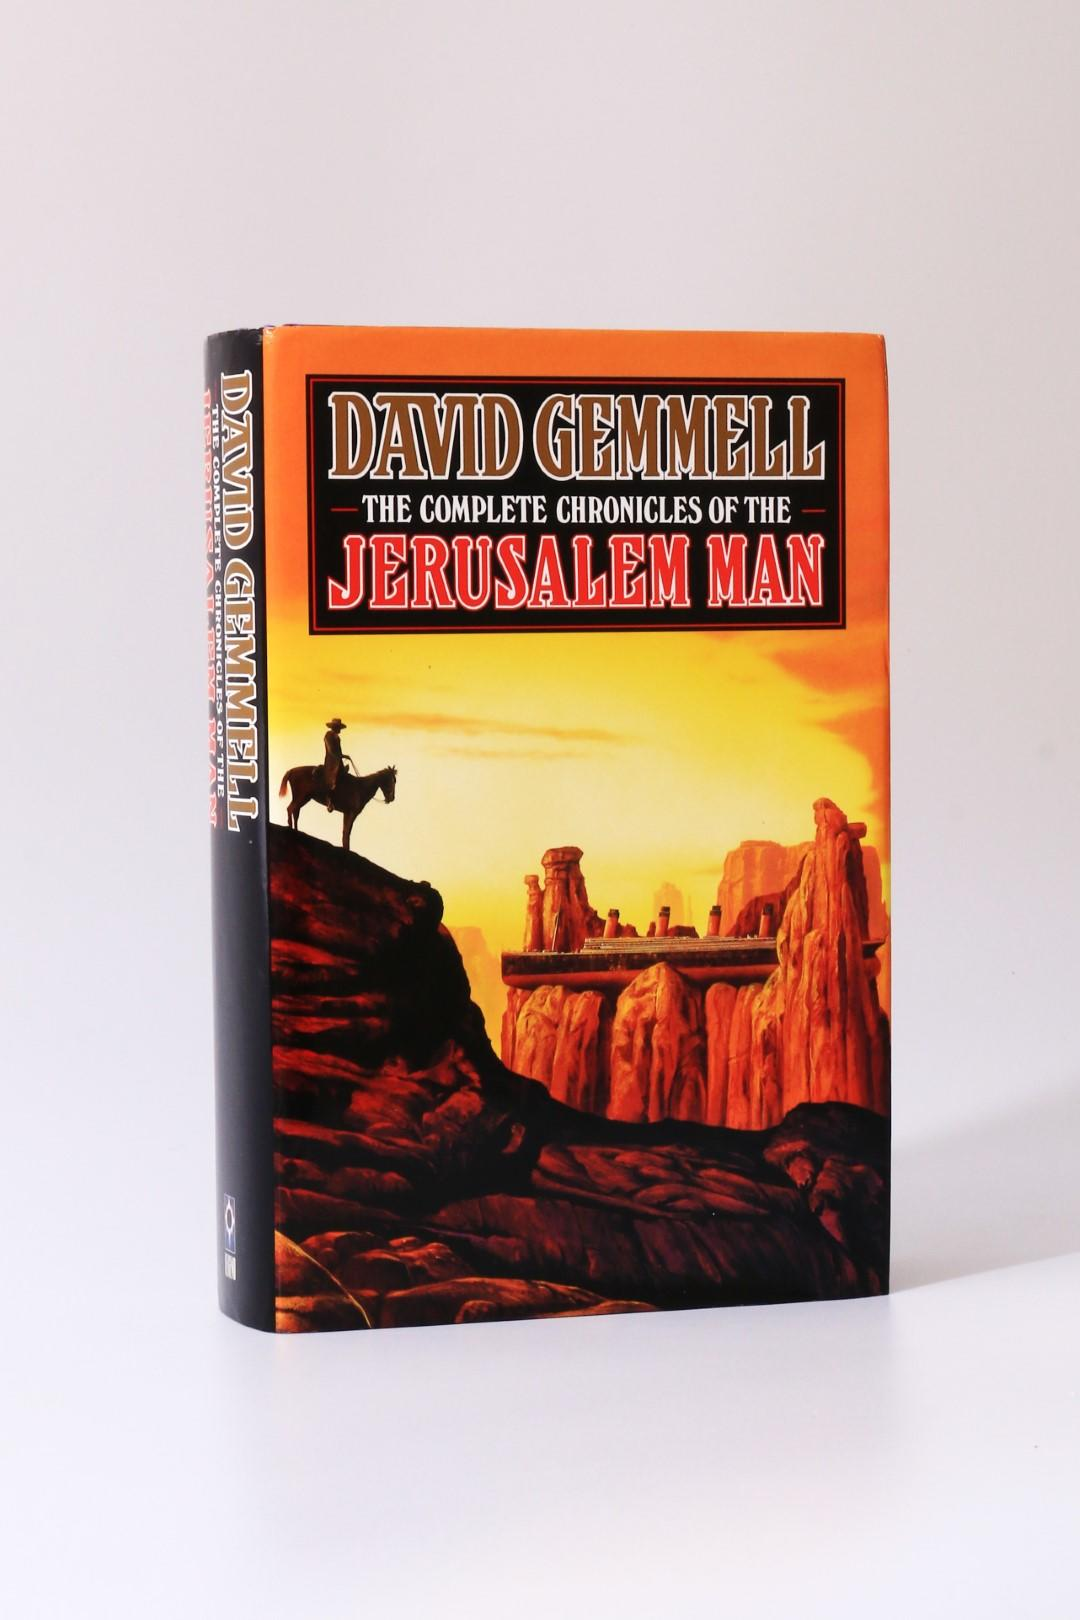 David Gemmell - The Complete Chronicles of the Jerusalem Man - Legend, 1995, First Thus.